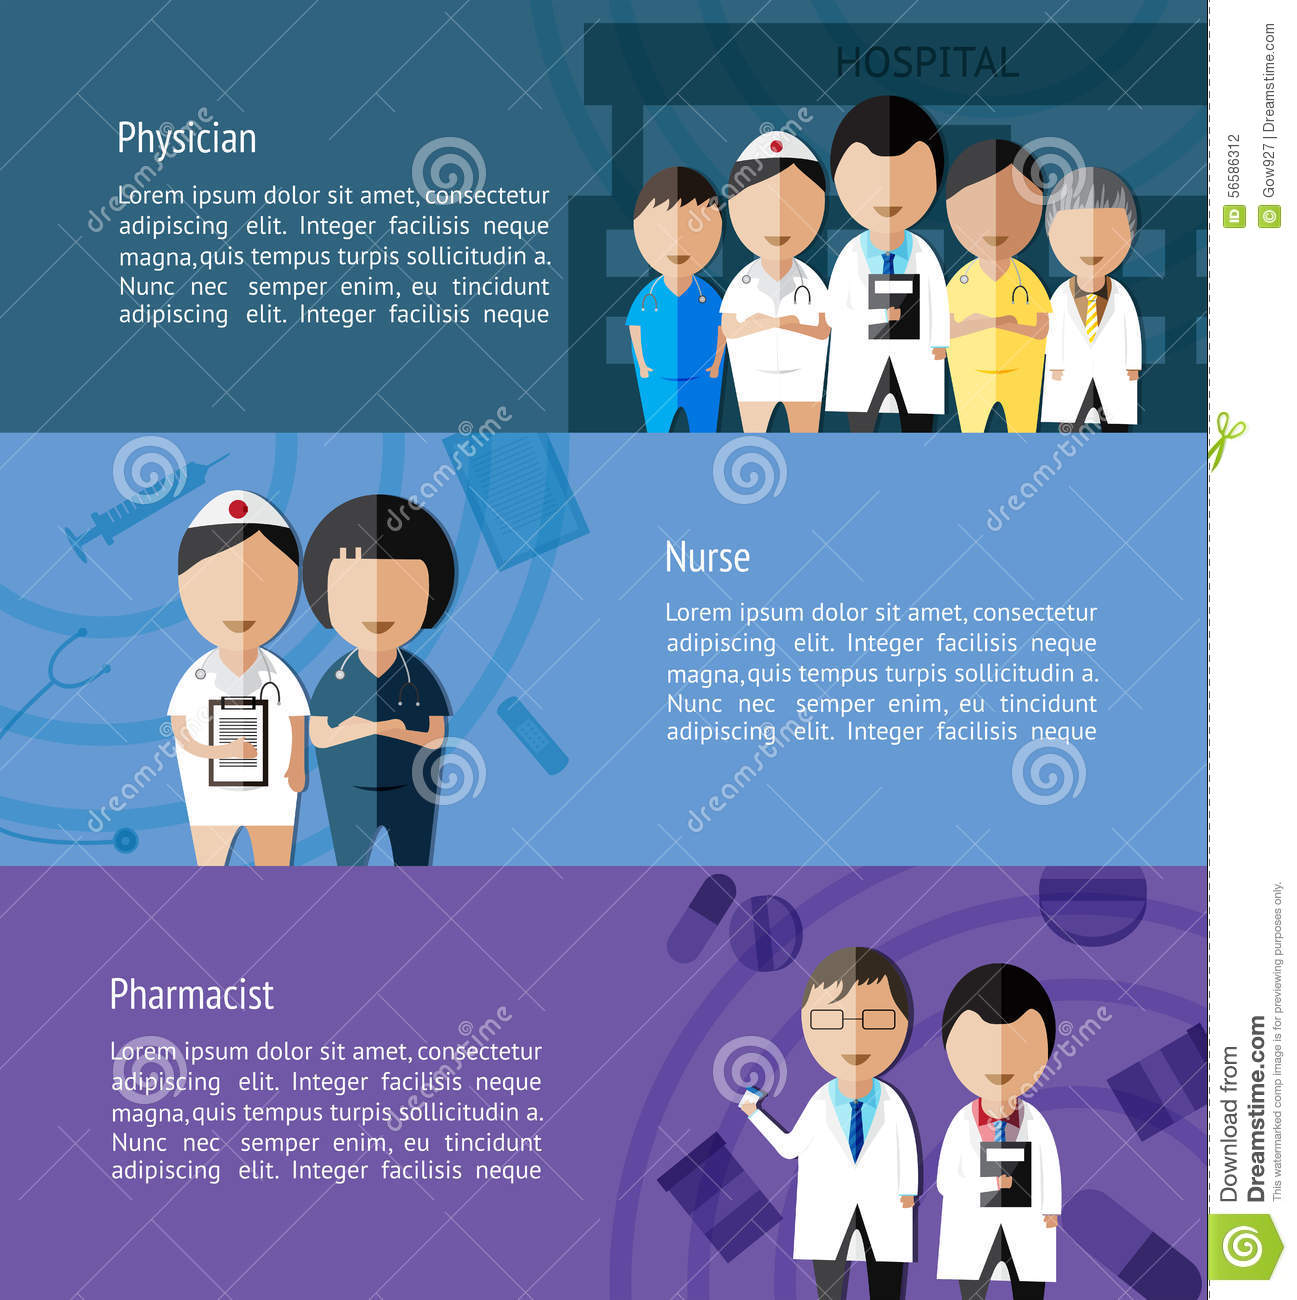 physicians such as doctor nurse and pharmacist and